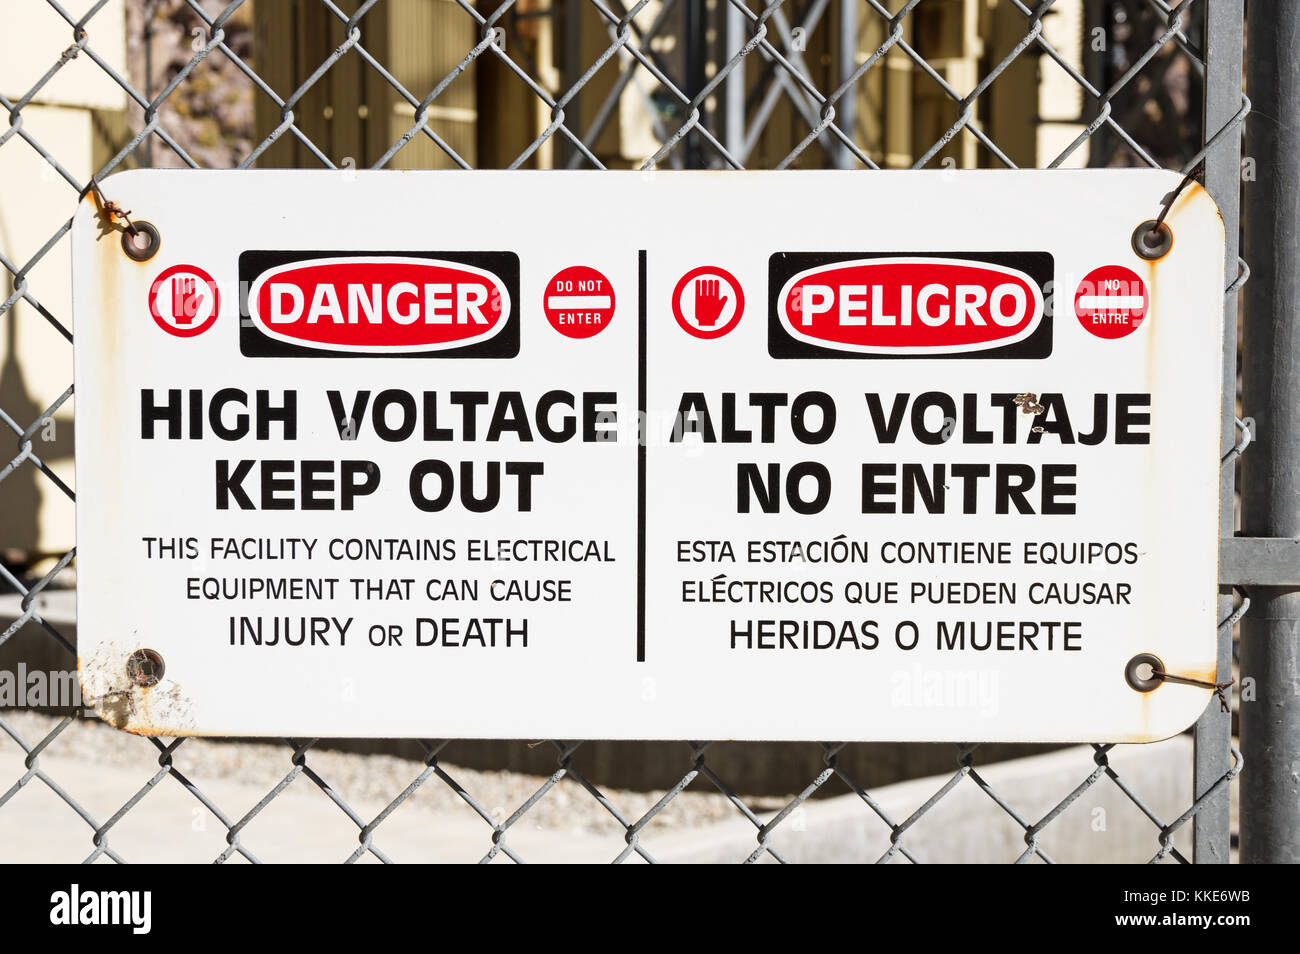 High voltage sign stock photos high voltage sign stock images alamy danger high voltage keep out sign on a chain link fence around electrical equipment stock buycottarizona Images